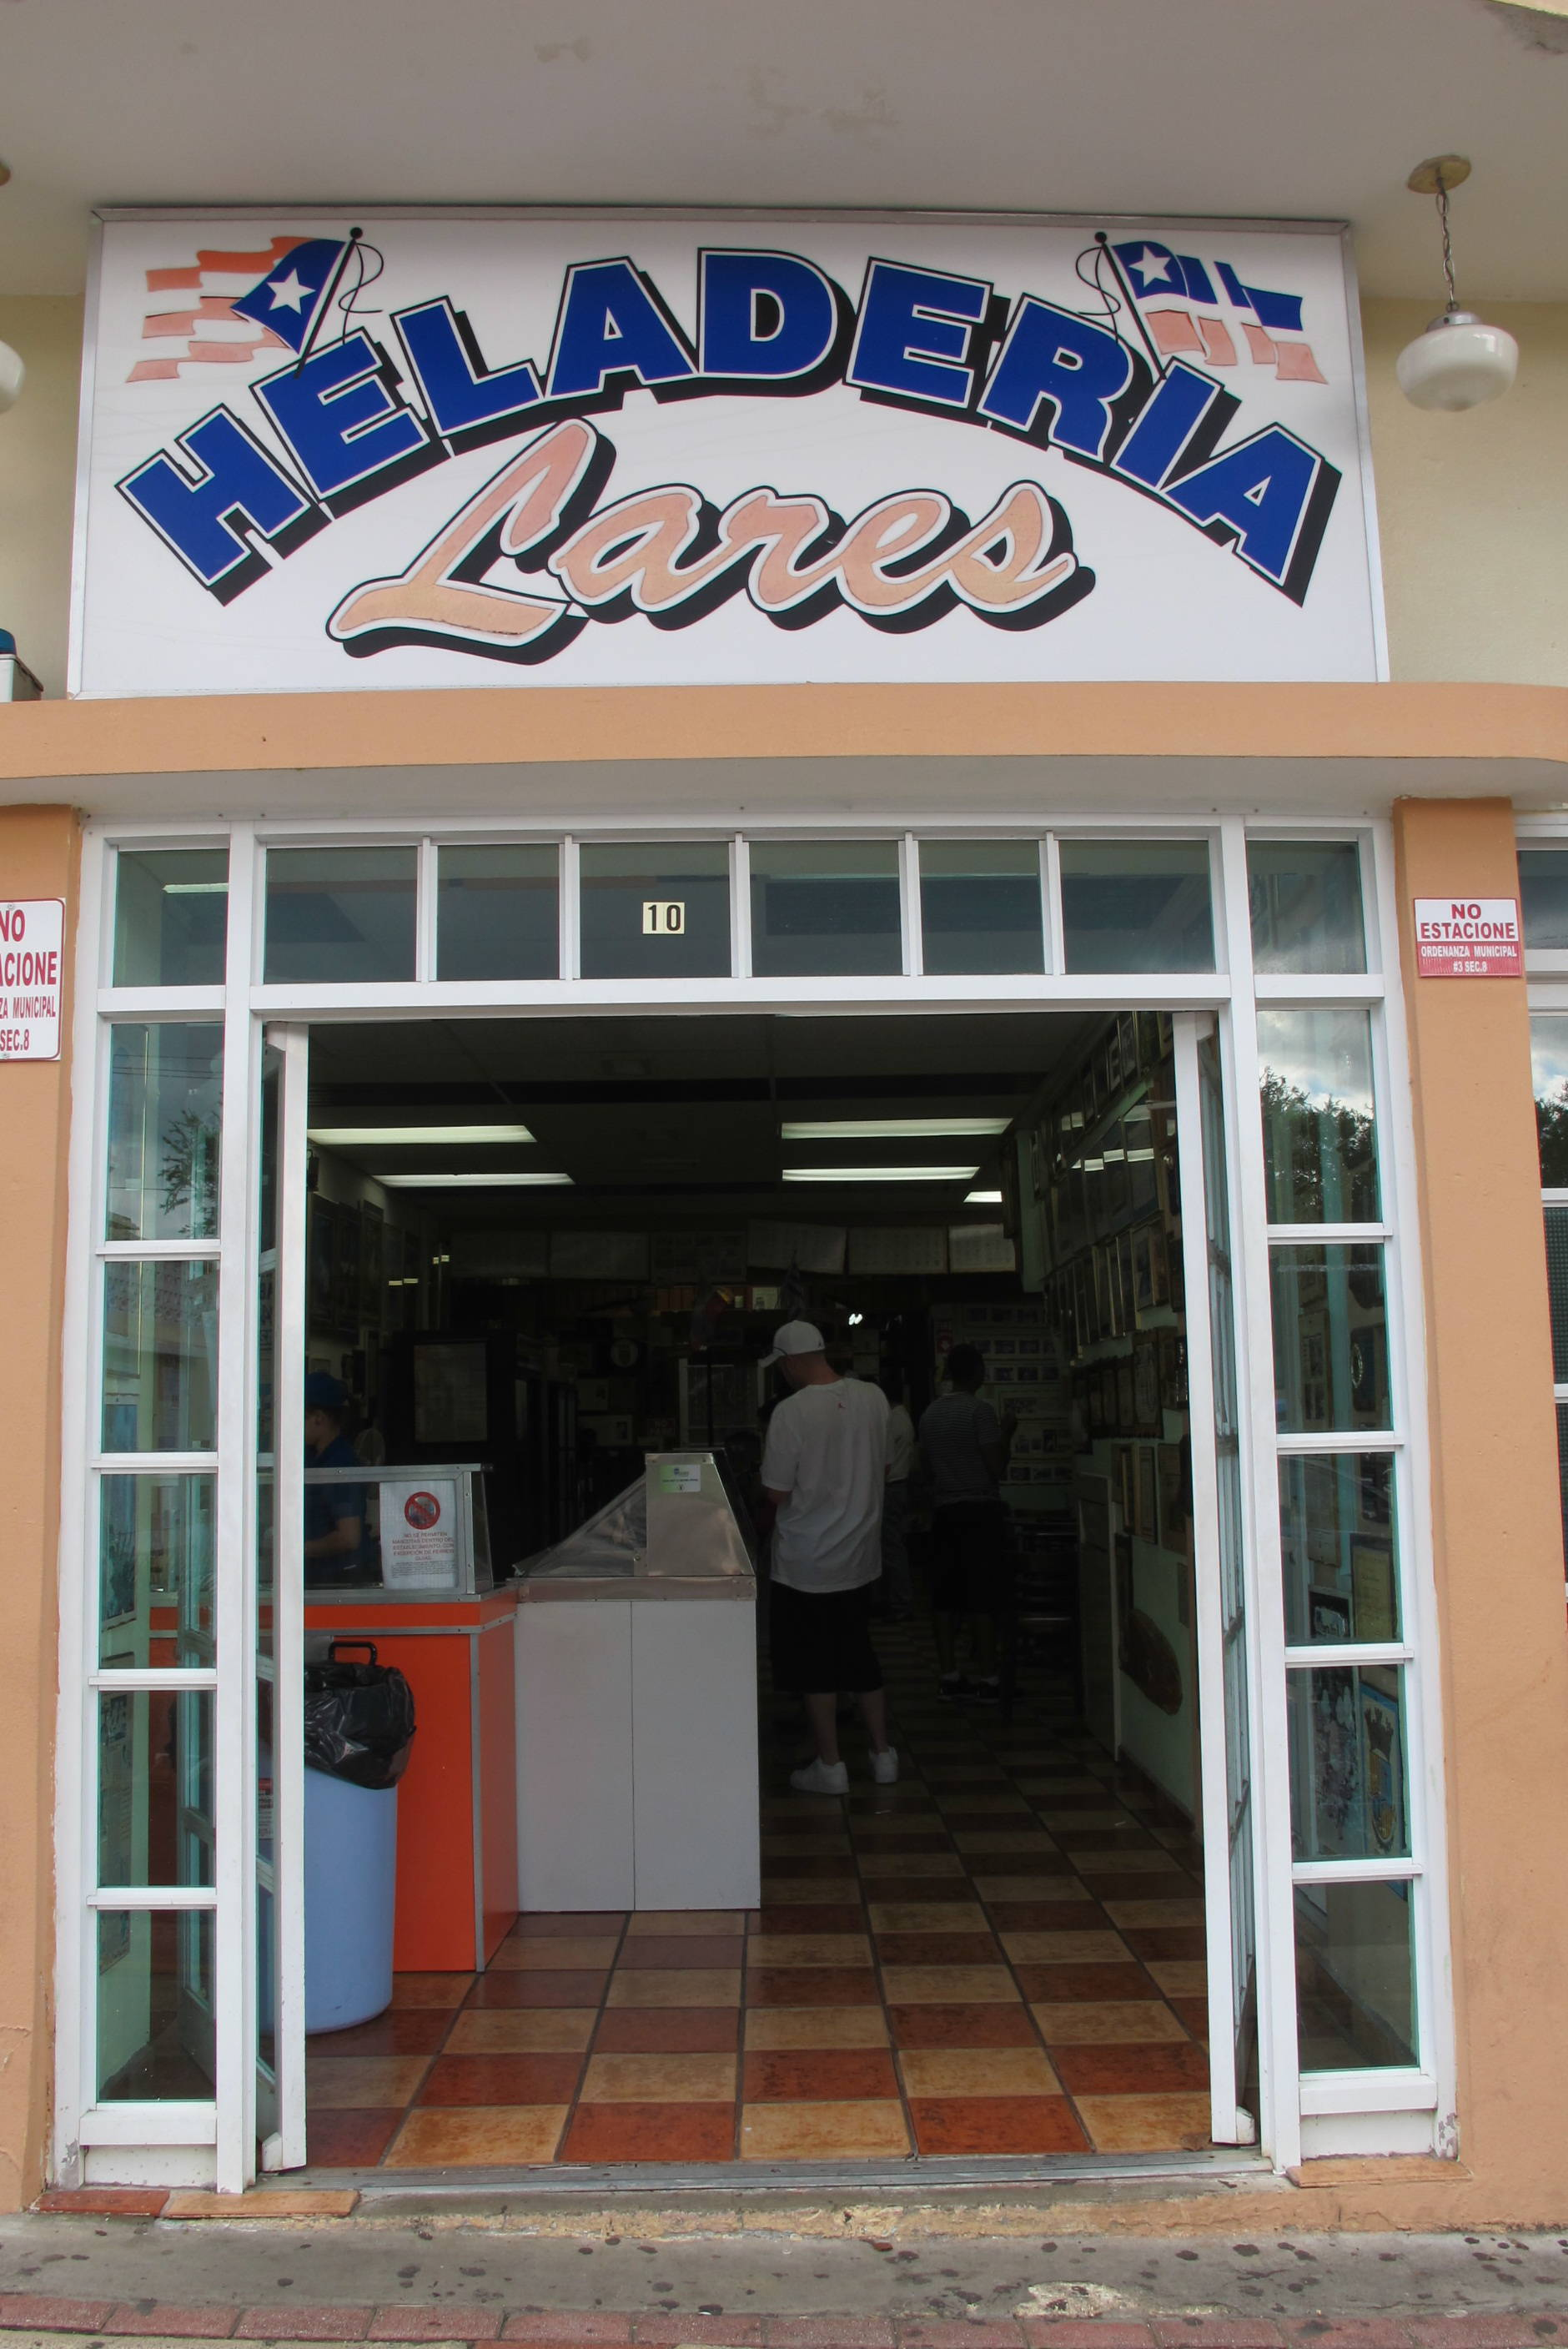 False Ice Cream Shop / Falsa Heladería